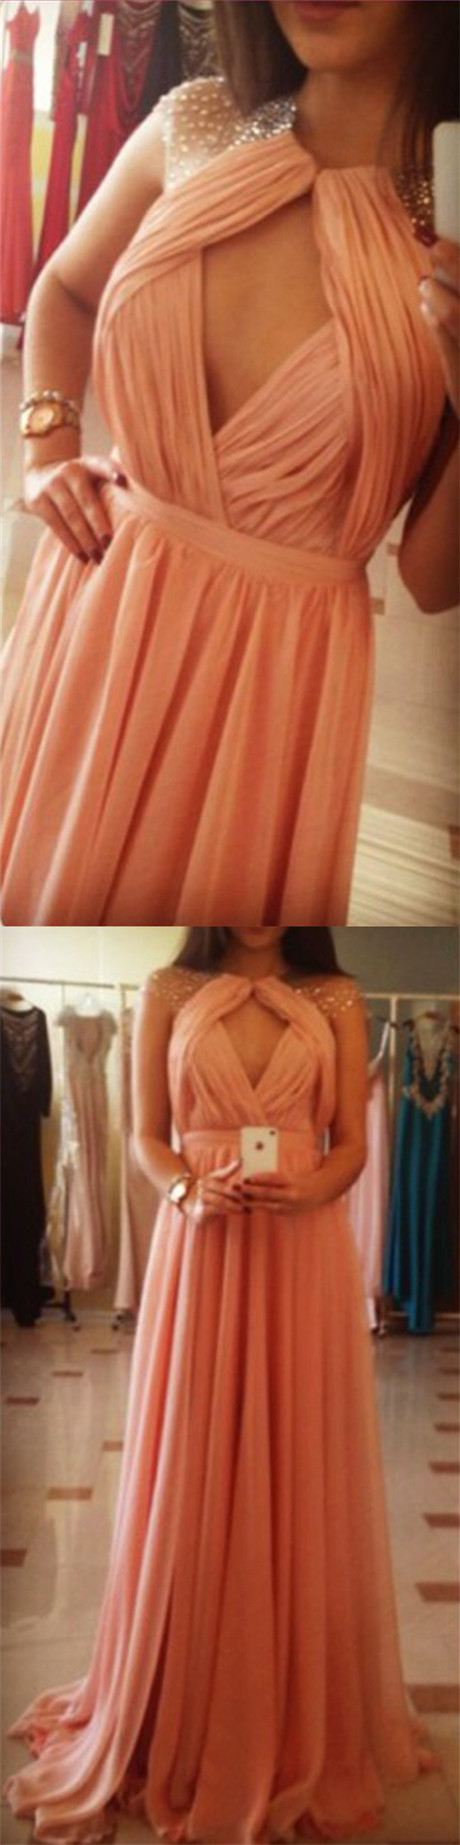 Modern round neck illusion back cap sleeves keyhole peach prom dress